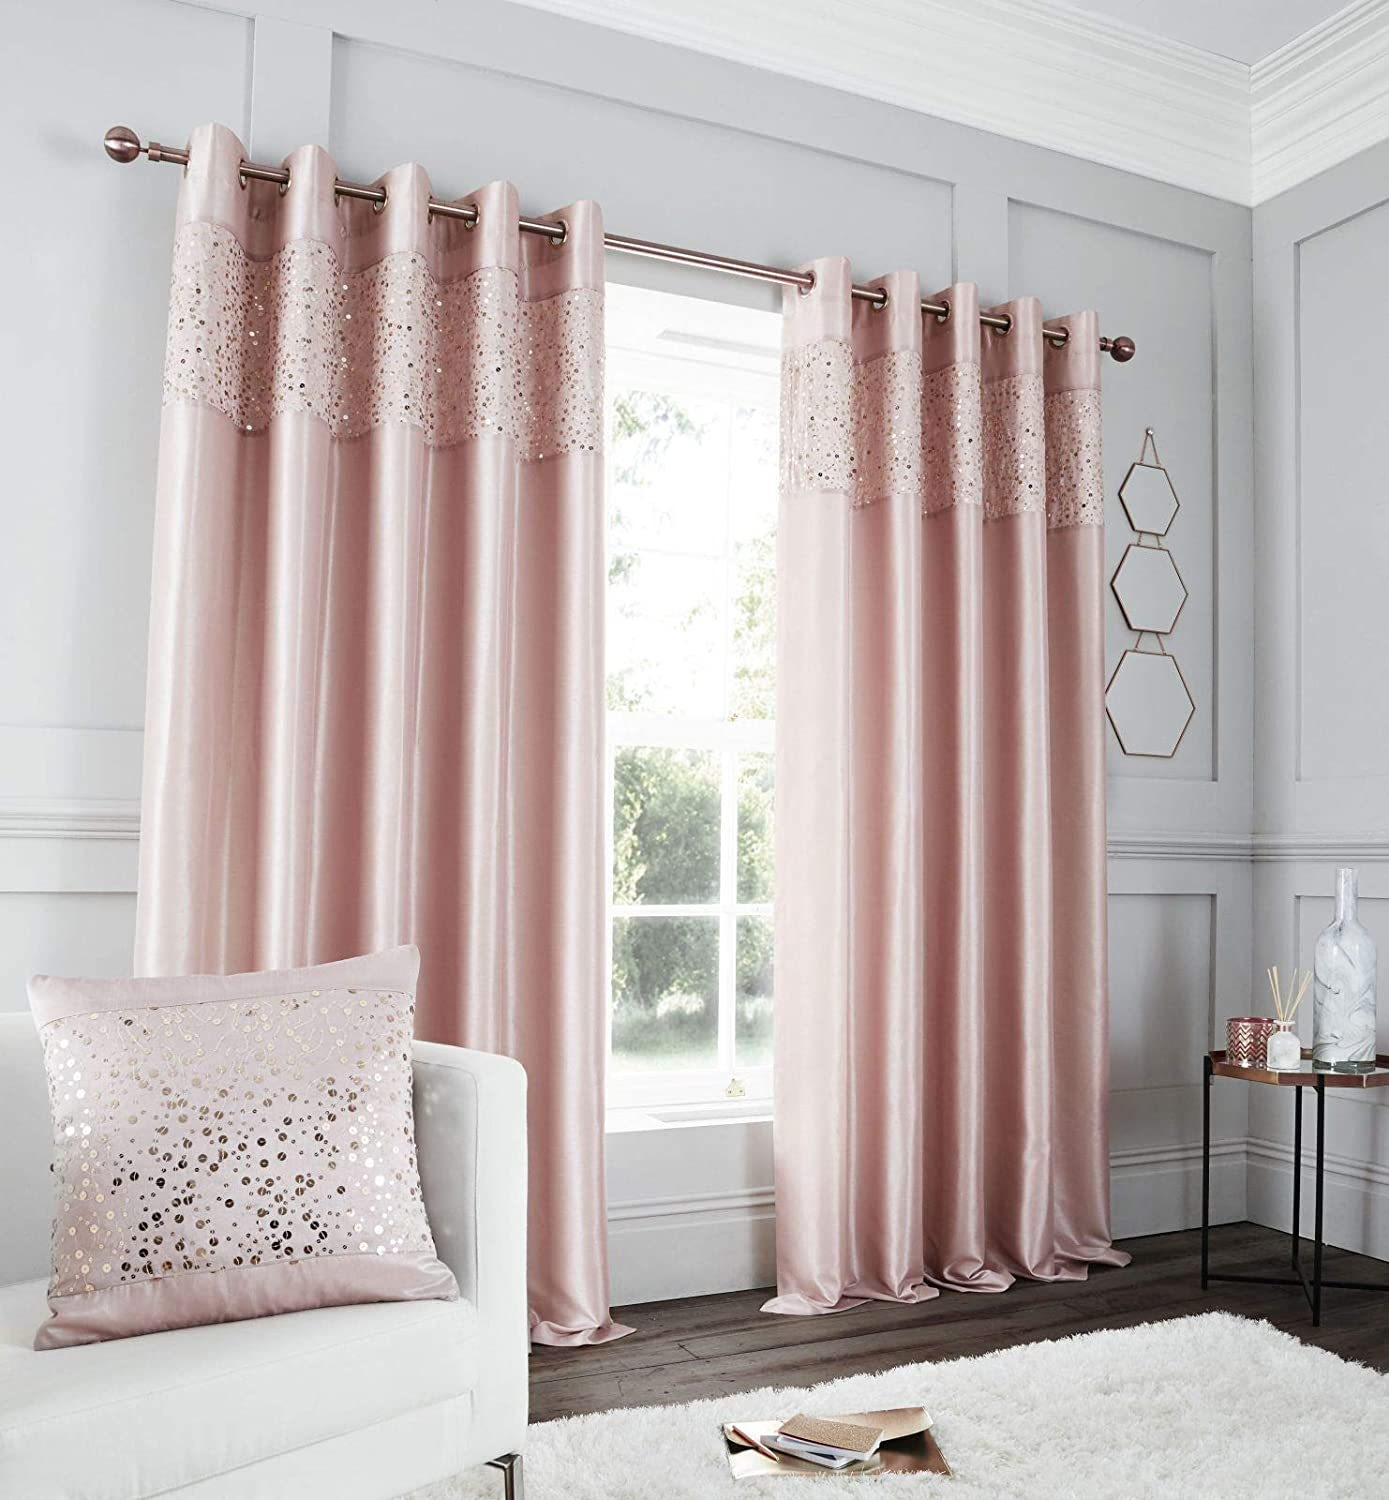 Catherine Lansfield Glitzy Eyelet Curtain 66x54 Inch Blush Turner Bianca DS/46682/W/E6654/BLH